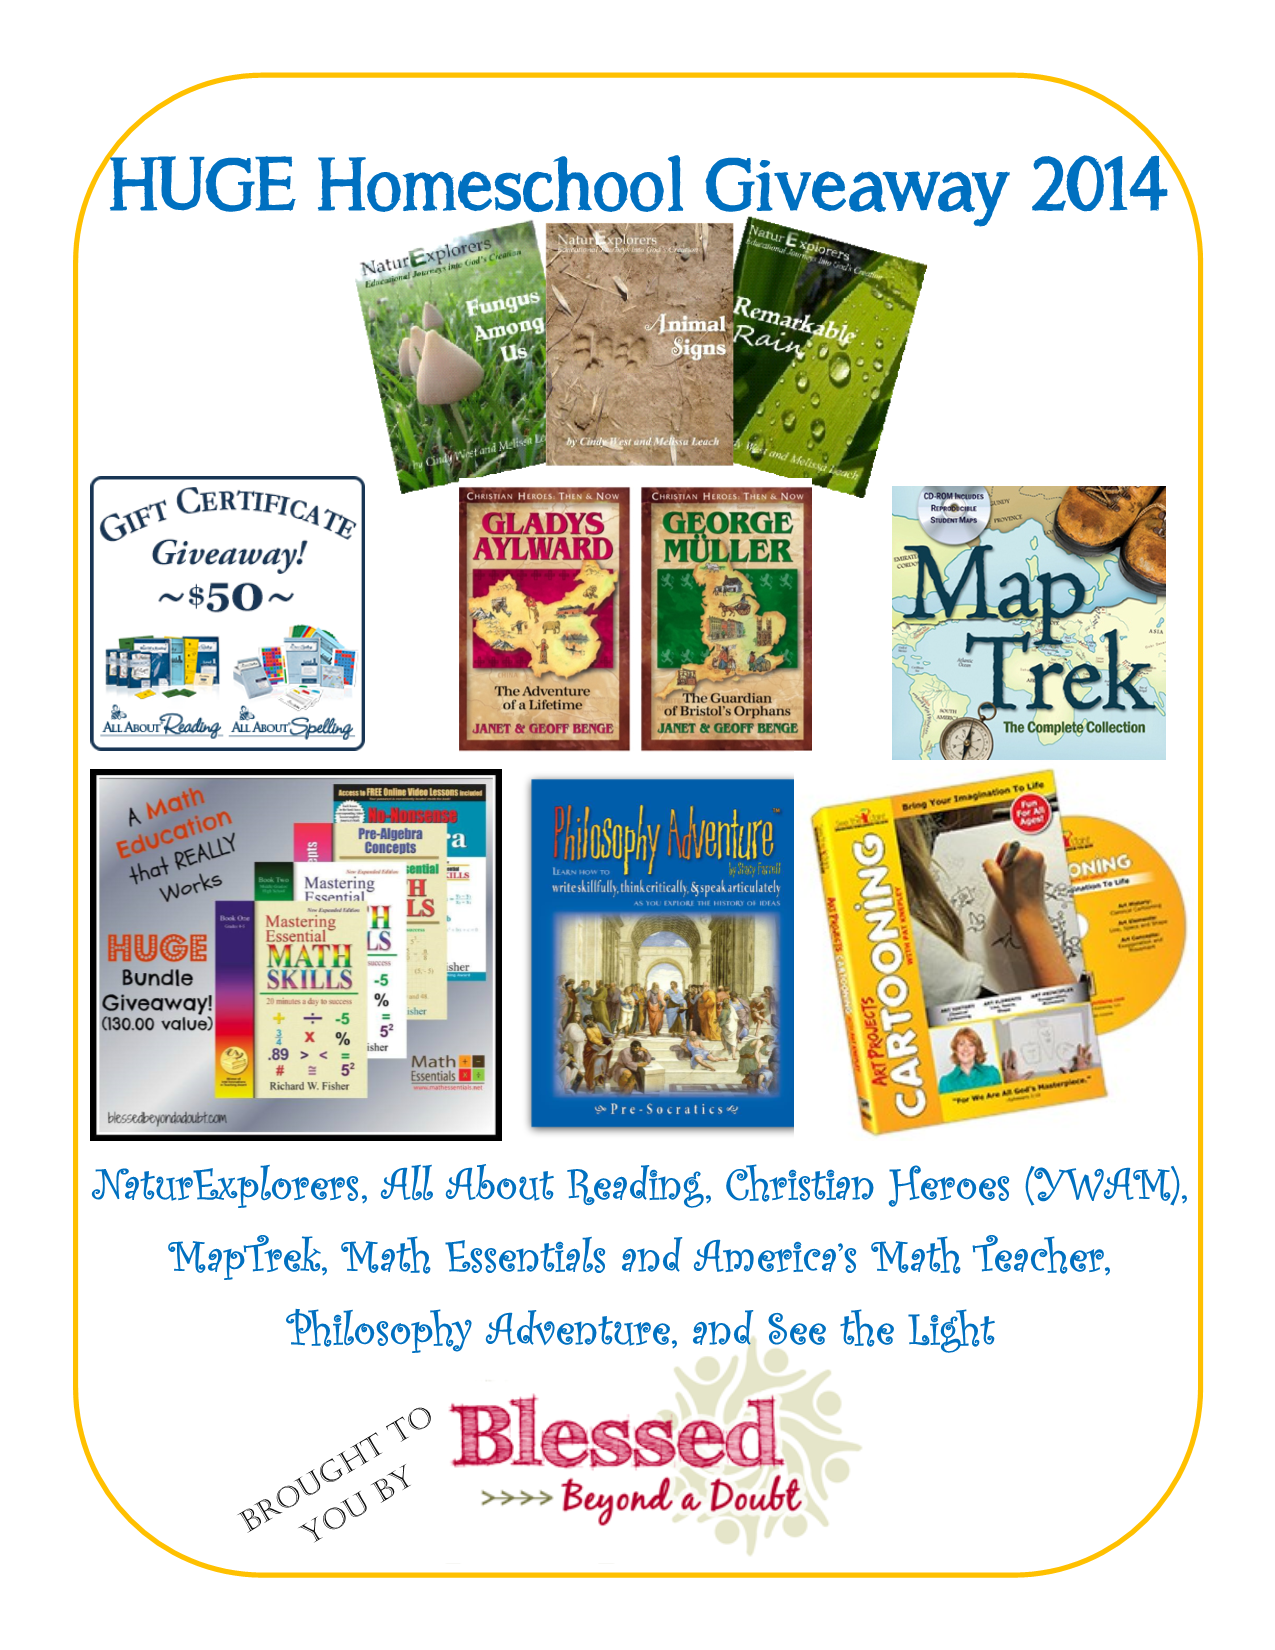 Enter To Win Some Great Prizes In This Huge Homeschool